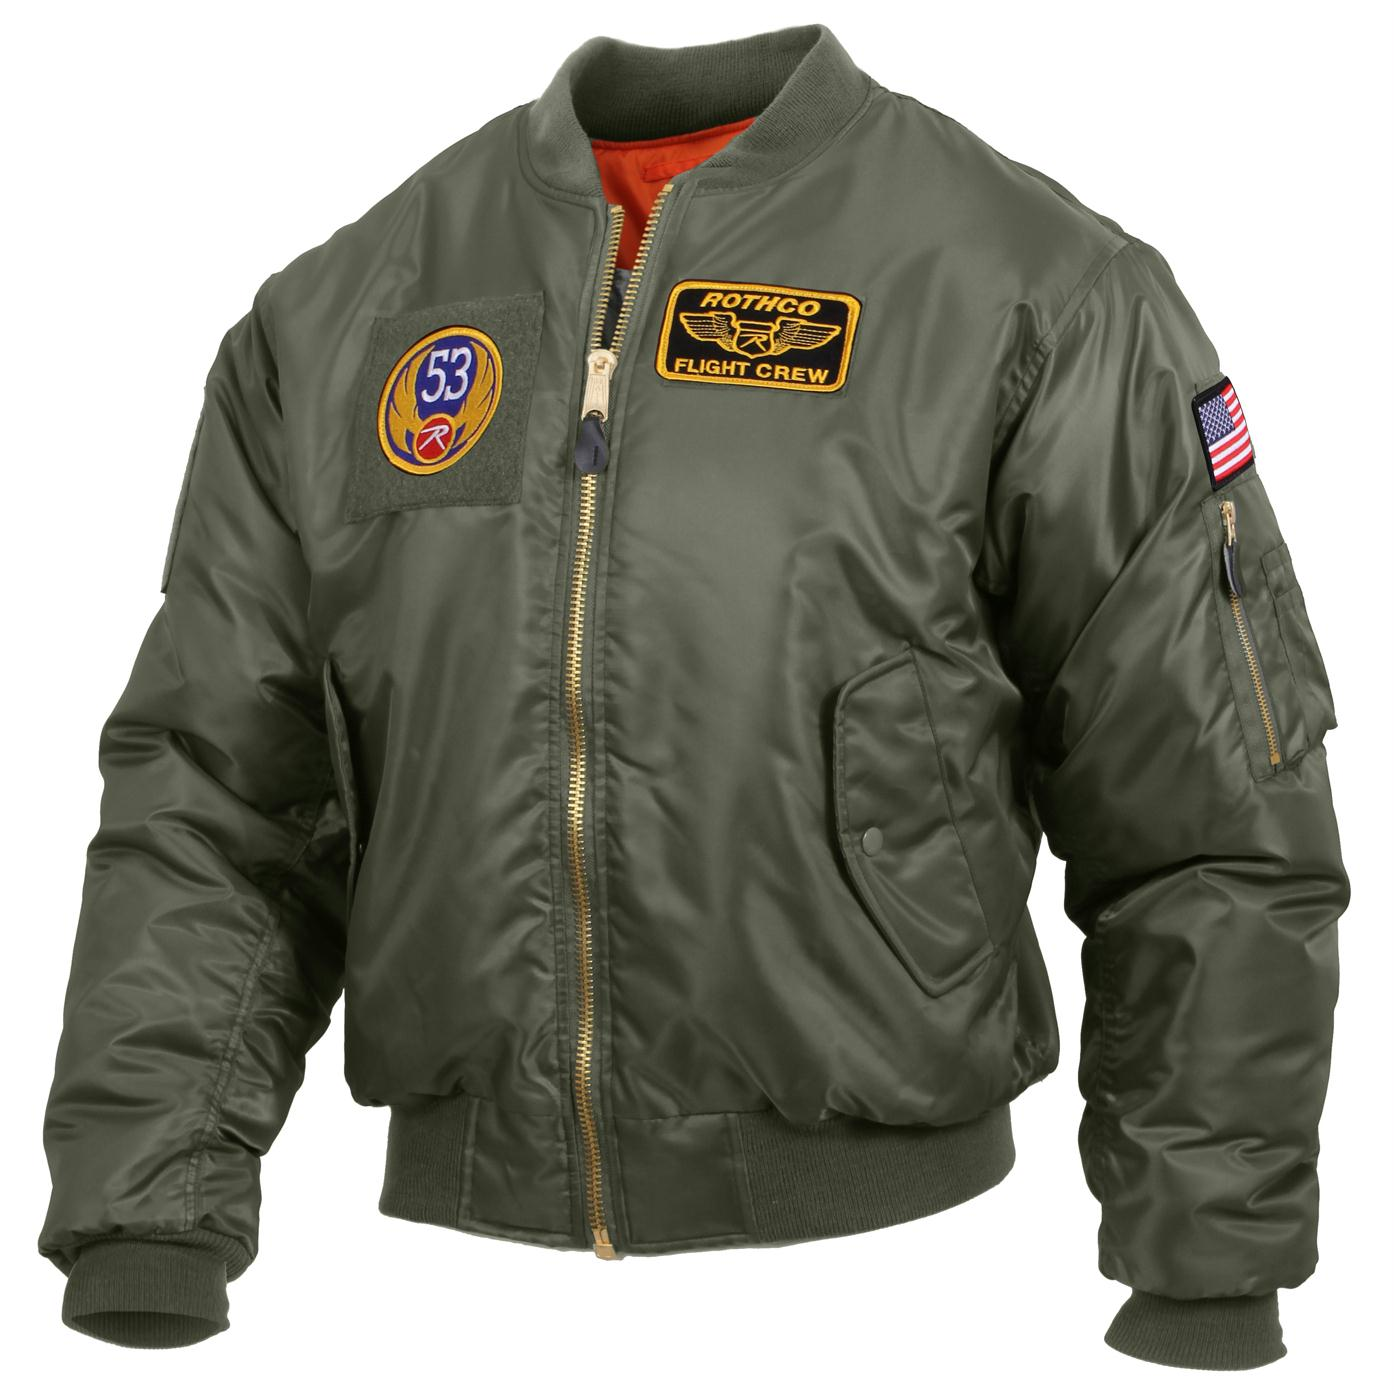 Rothco MA-1 Flight Jacket with Patches - Sage Green / XL